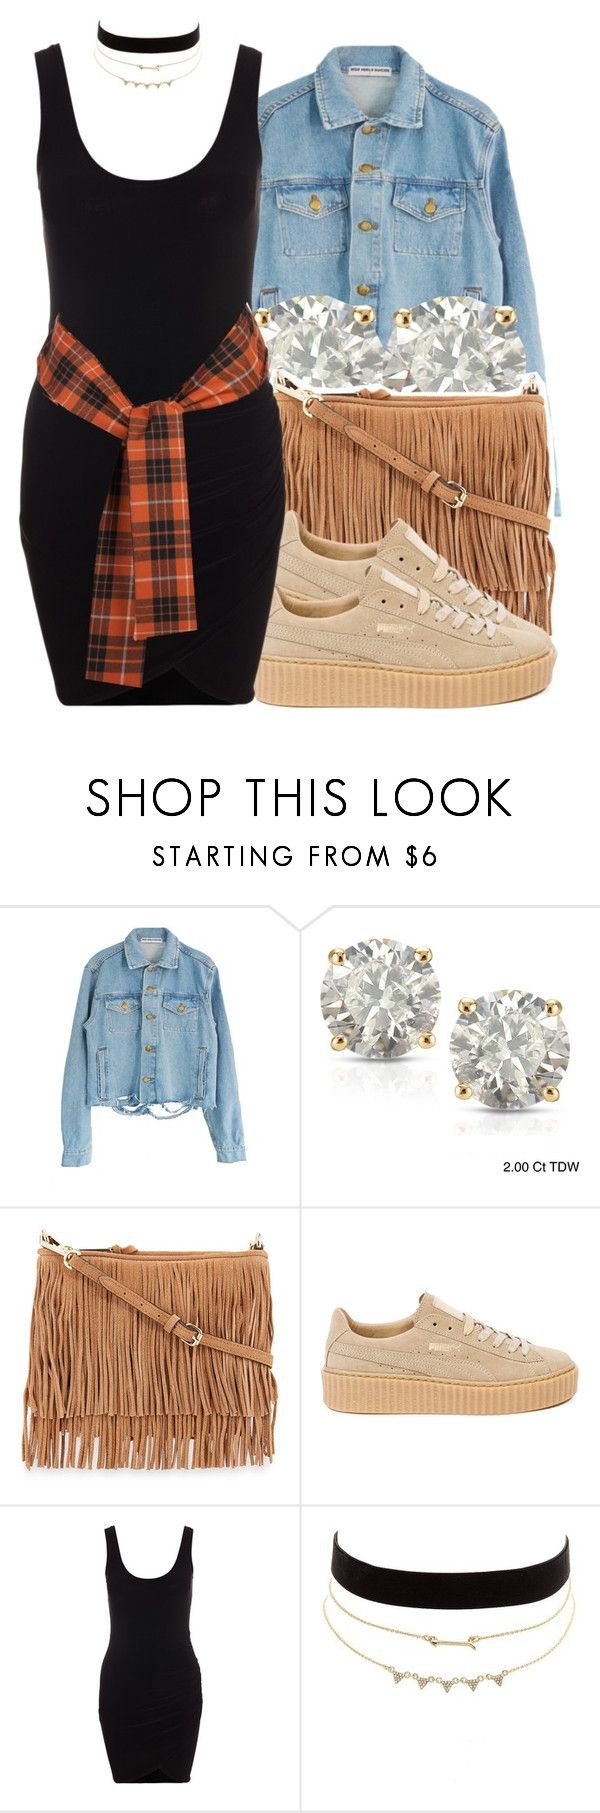 """""""Drank In My Cup x Kirko Bangz 🍁"""" by trinsowavy ❤ liked on Polyvore featuring Auriya, Rebecca Minkoff, Puma, Charlotte Russe and Vivienne Westwood Anglomania"""